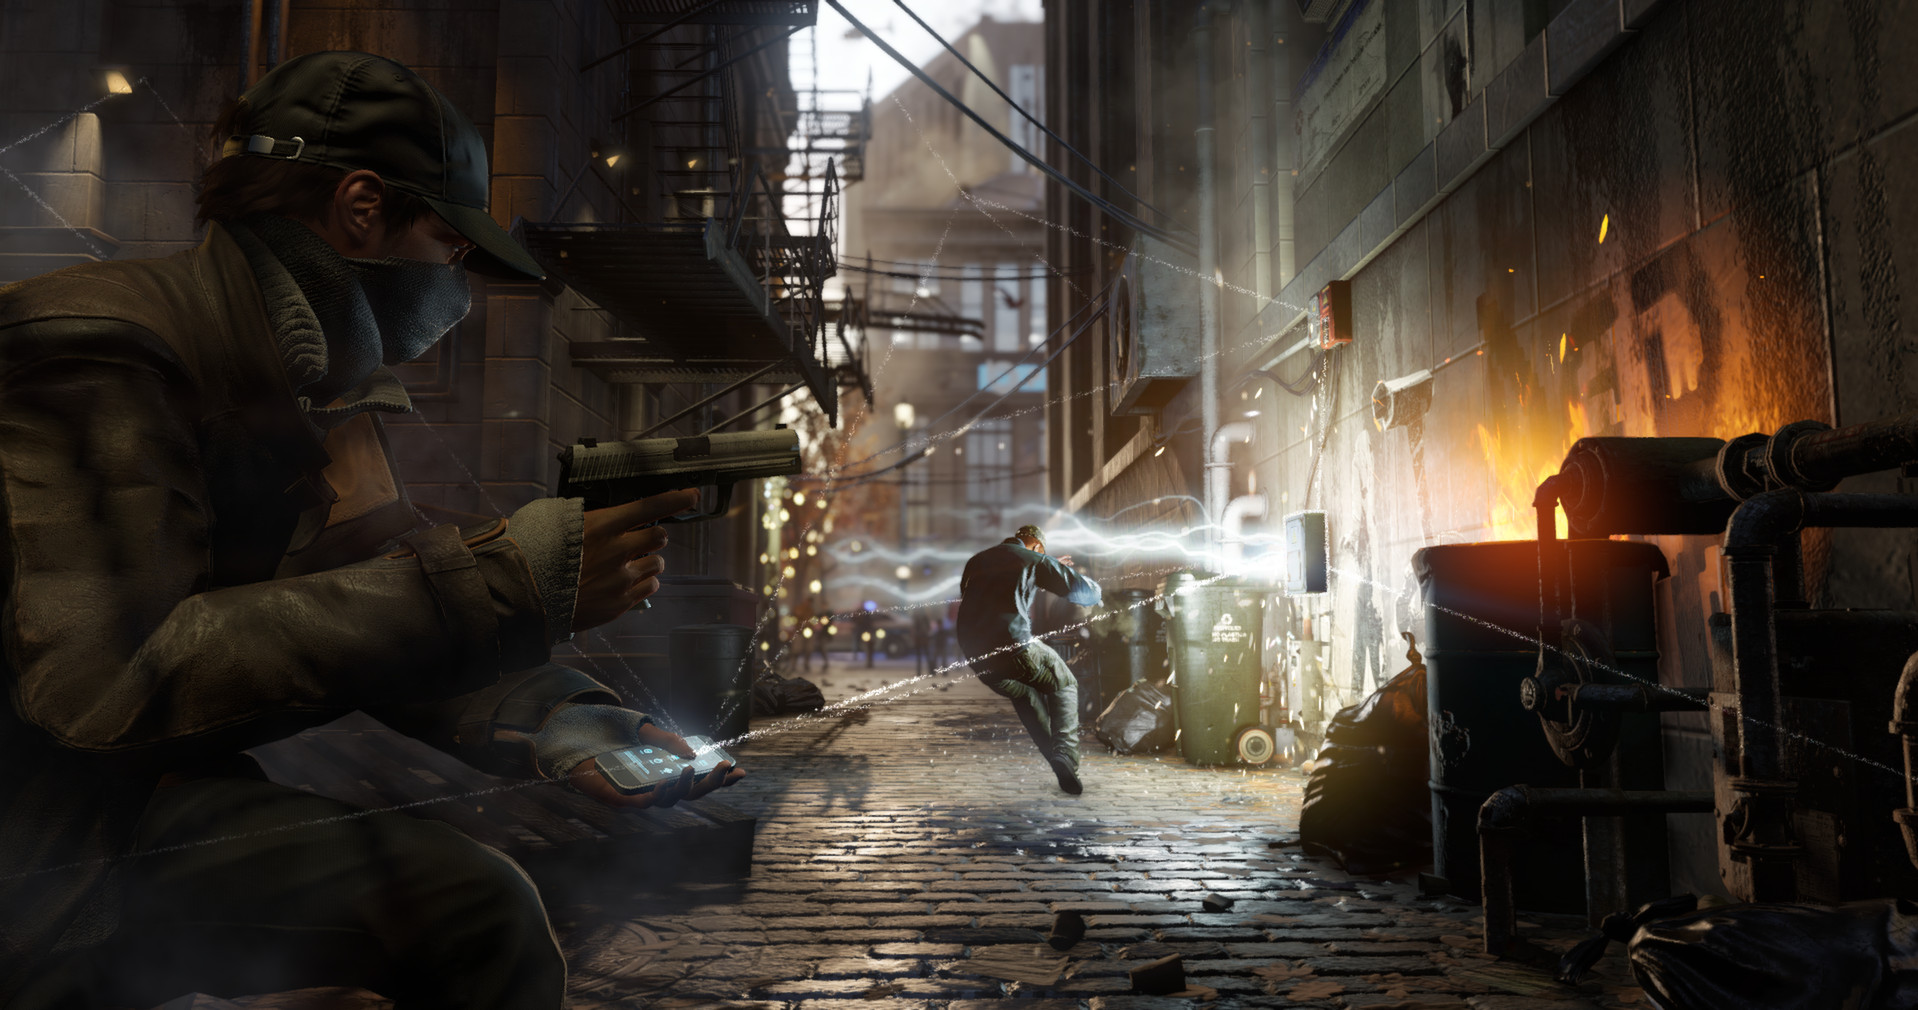 Watch Dogs image 2